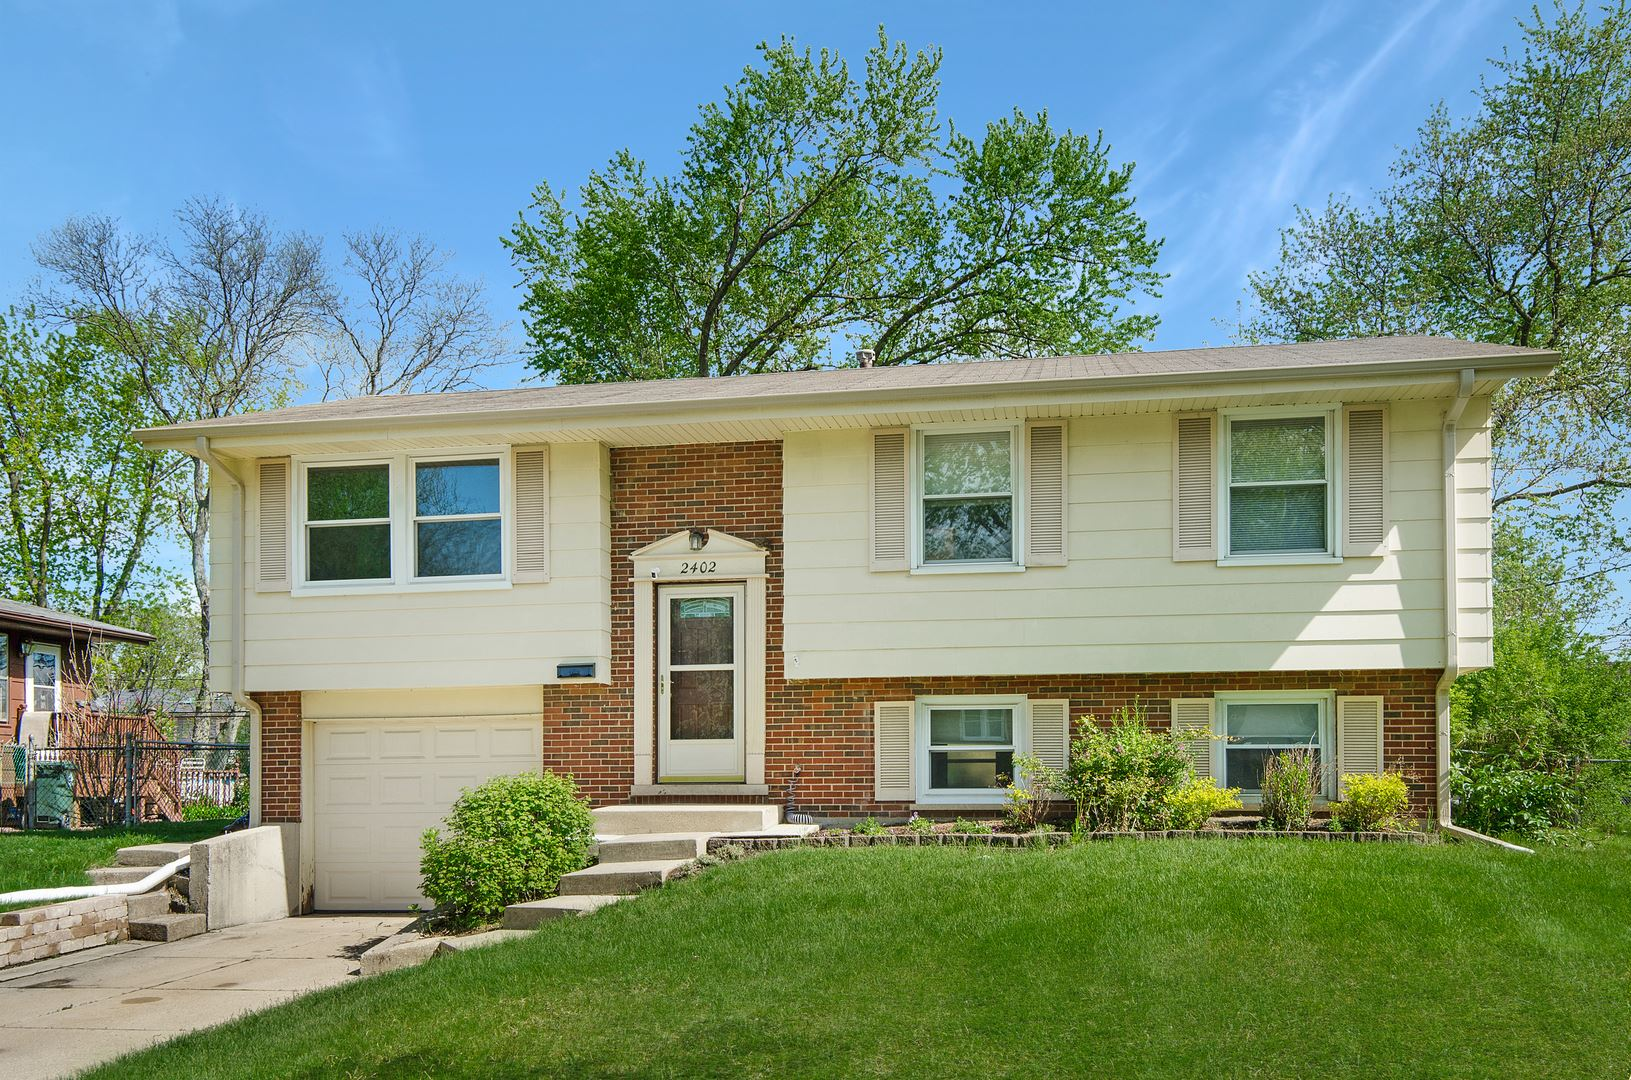 2402 Willow Lane, Rolling Meadows, IL 60008 - #: 10722363